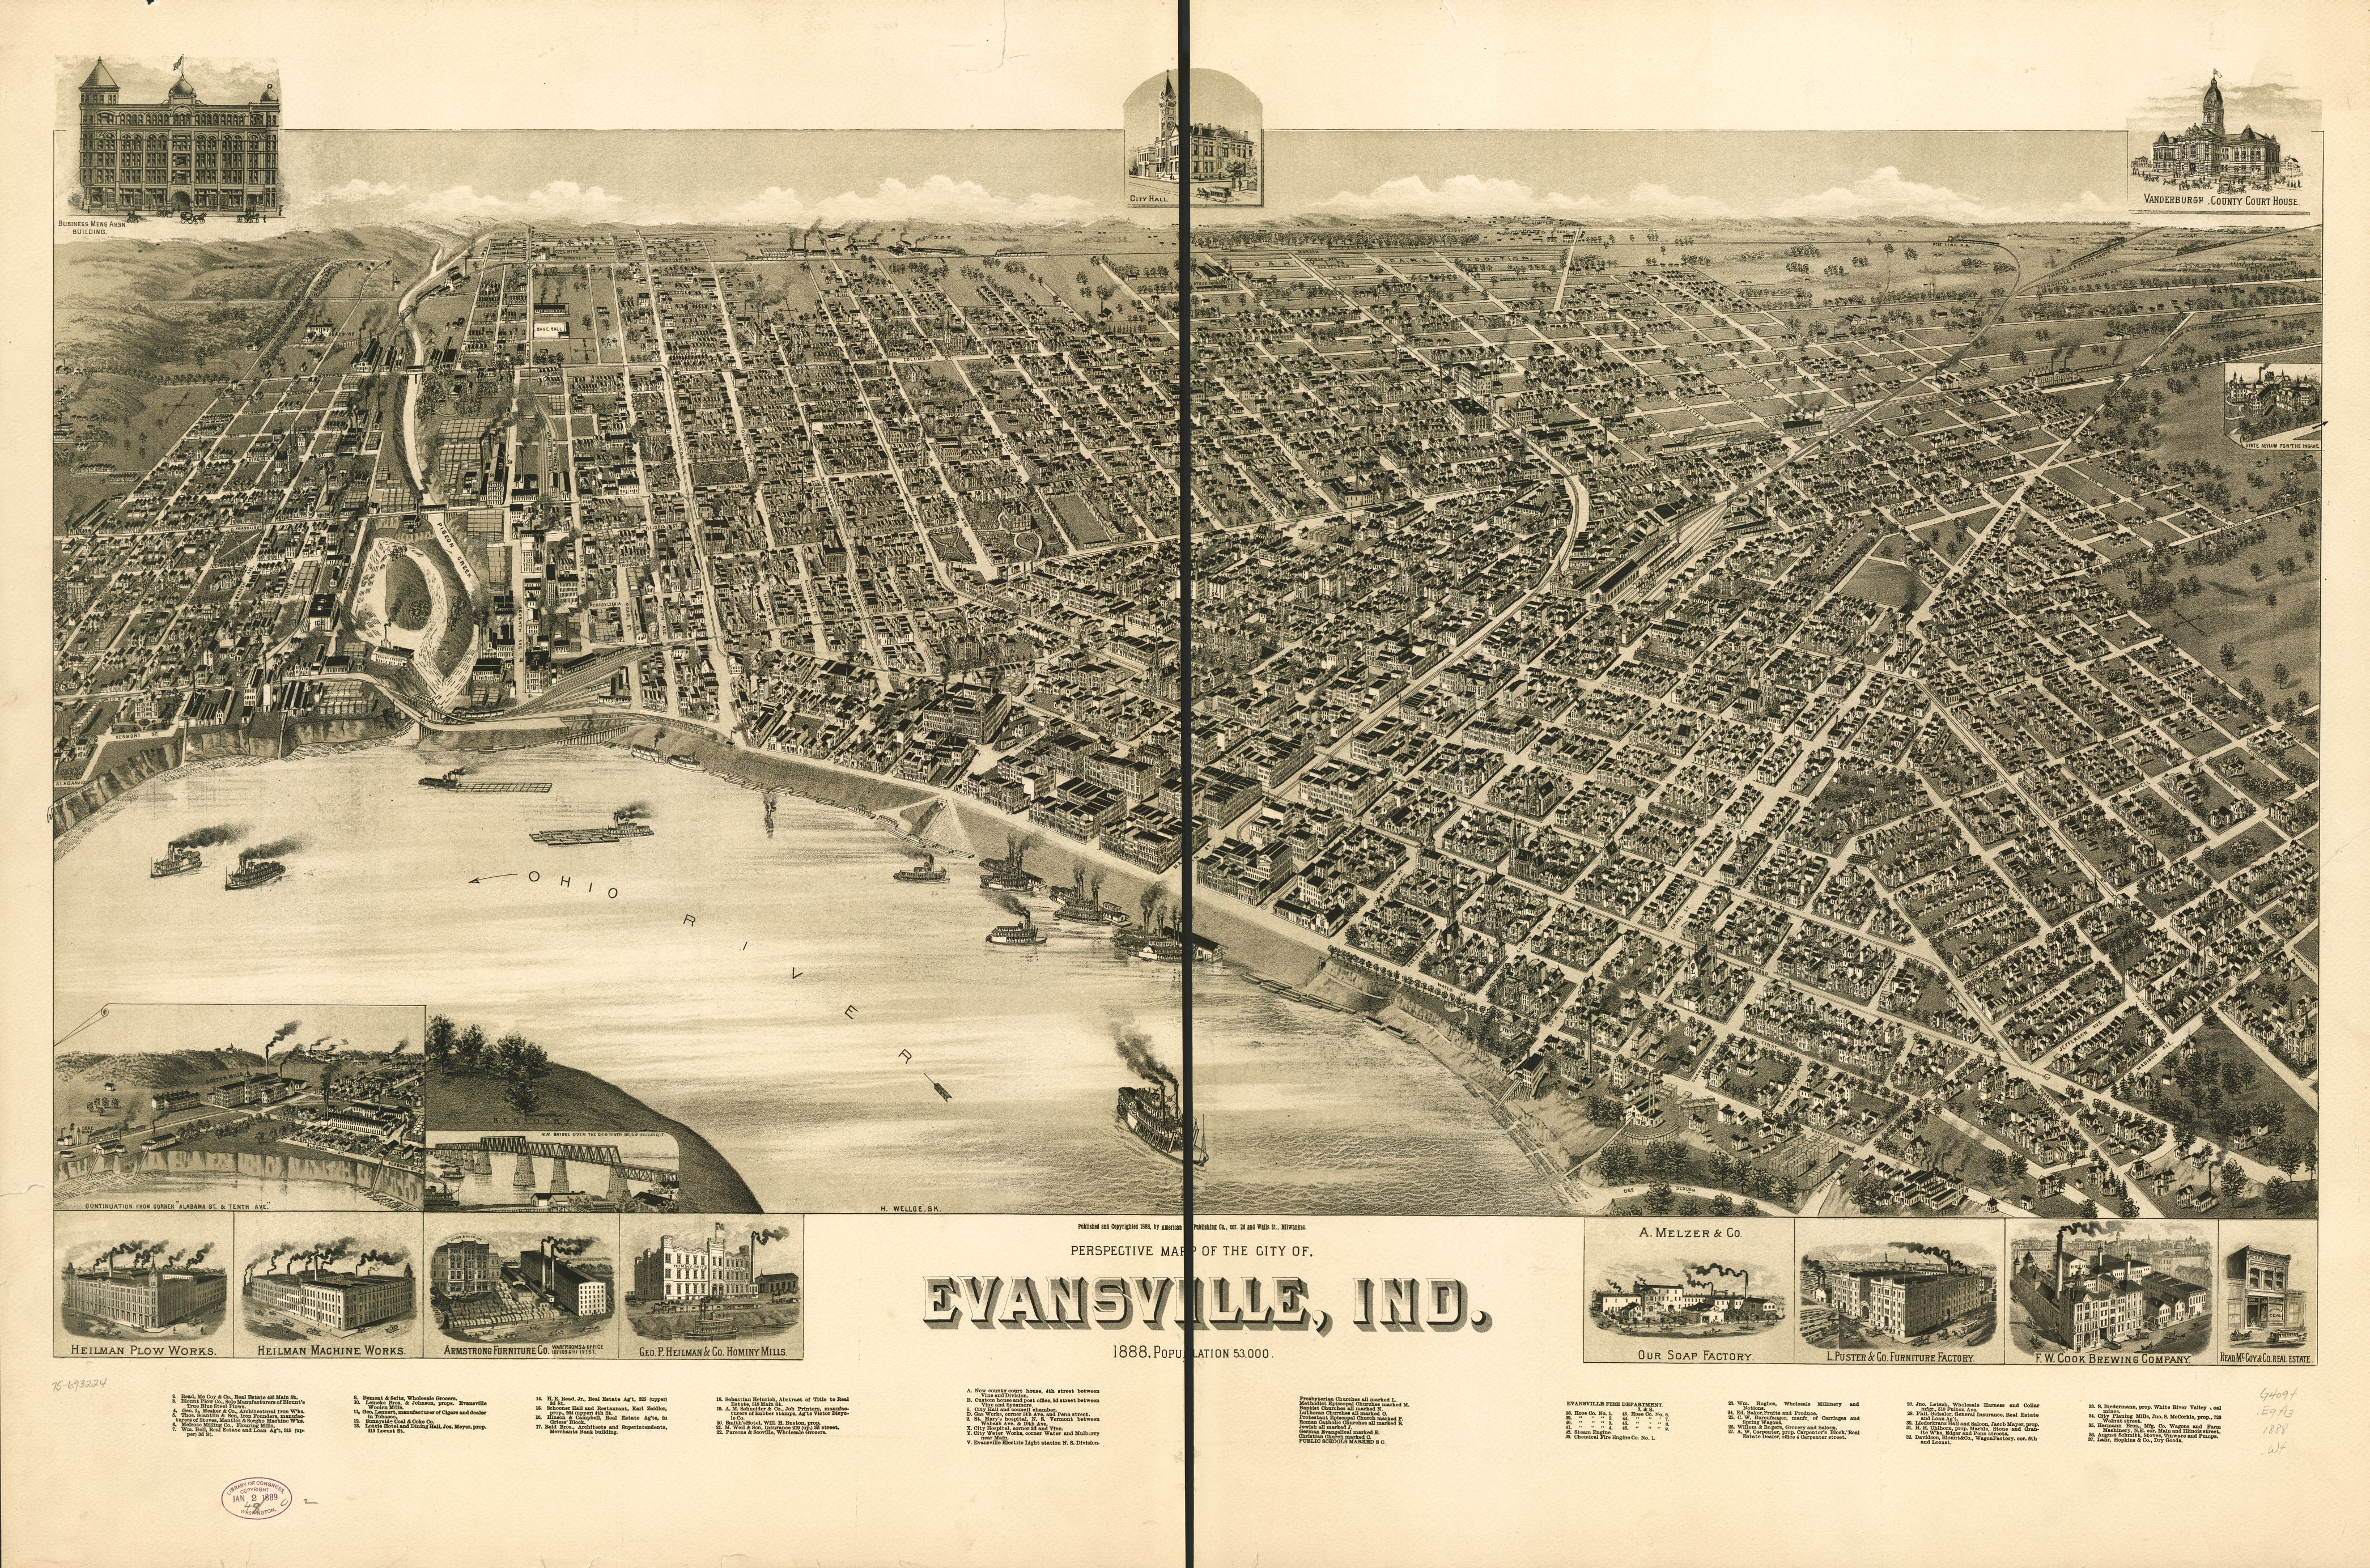 T shirt design evansville indiana - 1888 Map Of Evansville Indiana Founded On The North Side Of A Loop In